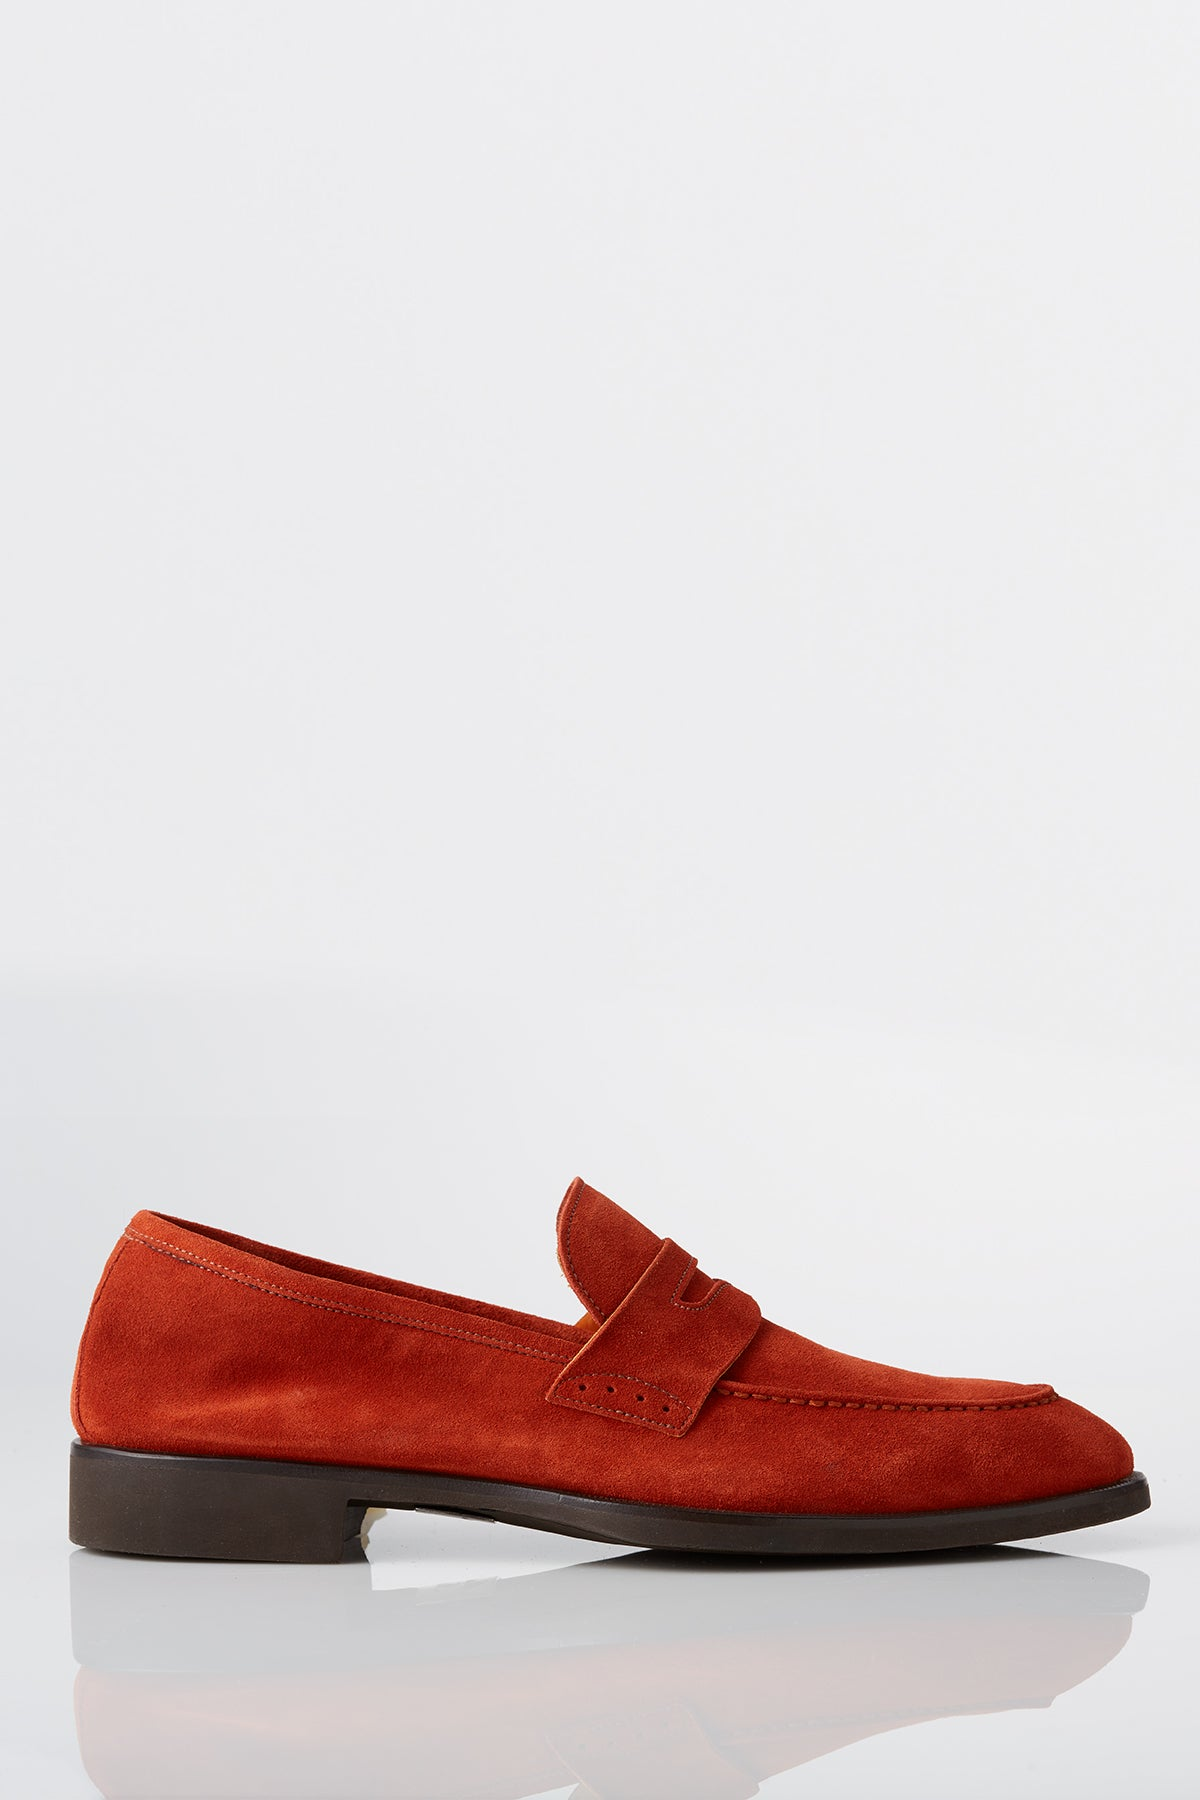 David August Suede Penny Loafer in Burnt Orange Di Bianco